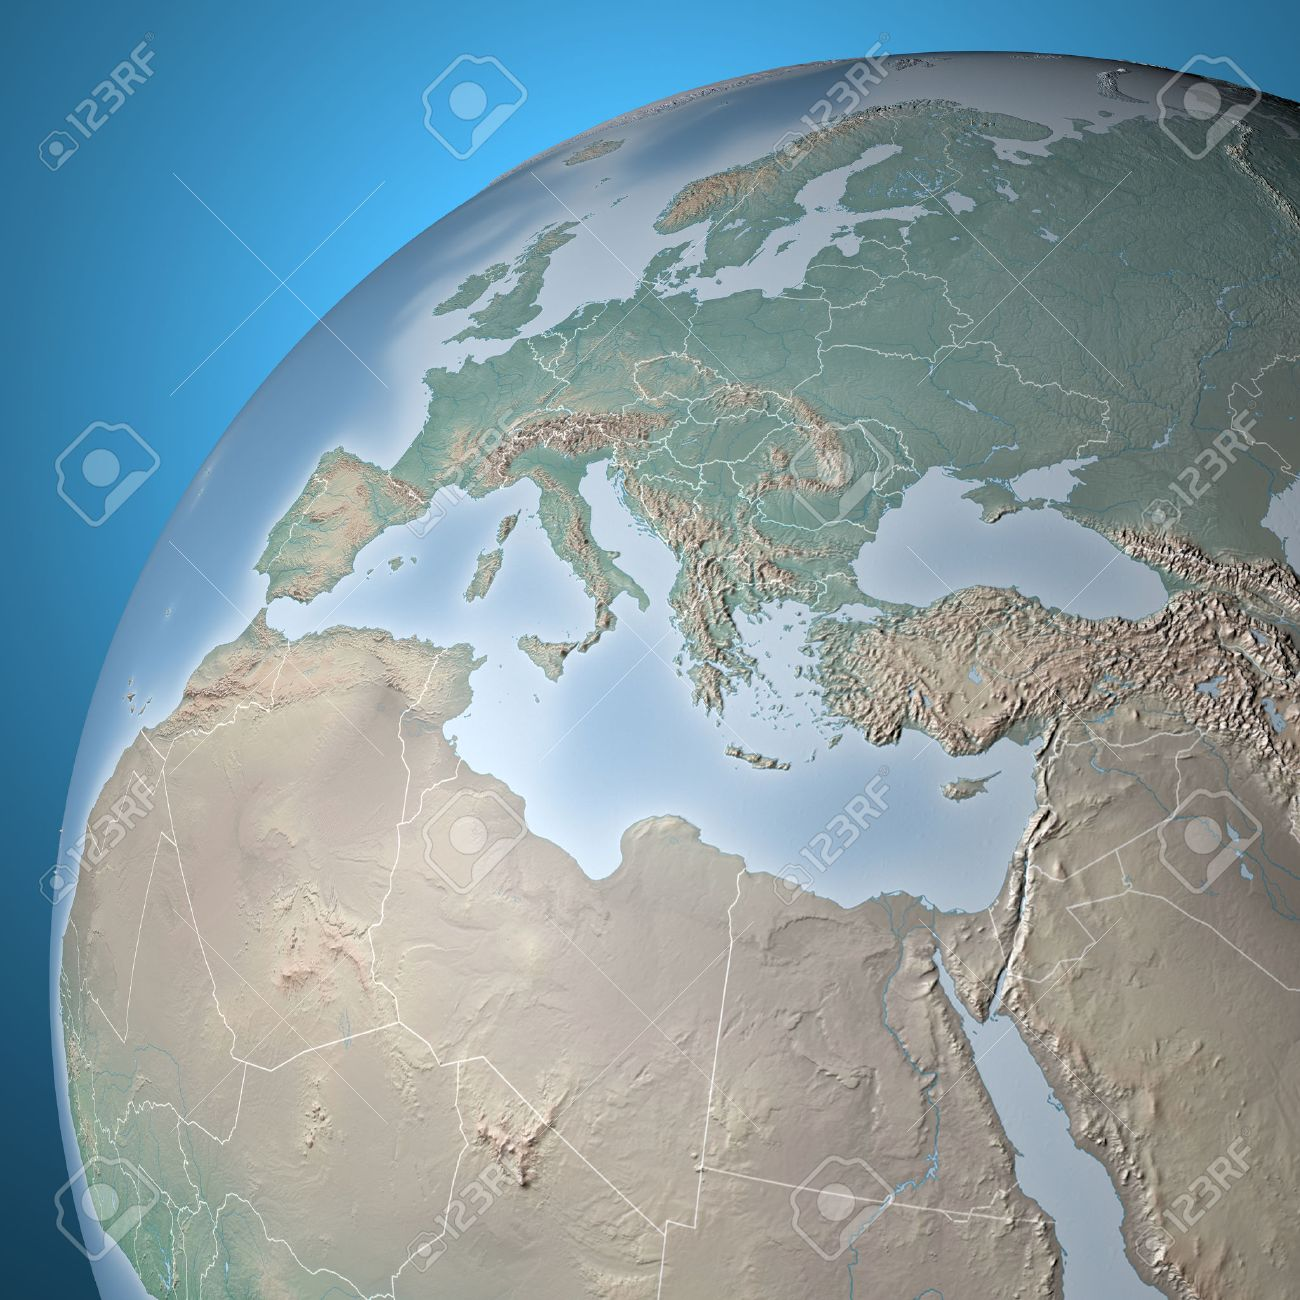 World map physical map middle east north africa europe stock stock photo world map physical map middle east north africa europe gumiabroncs Image collections